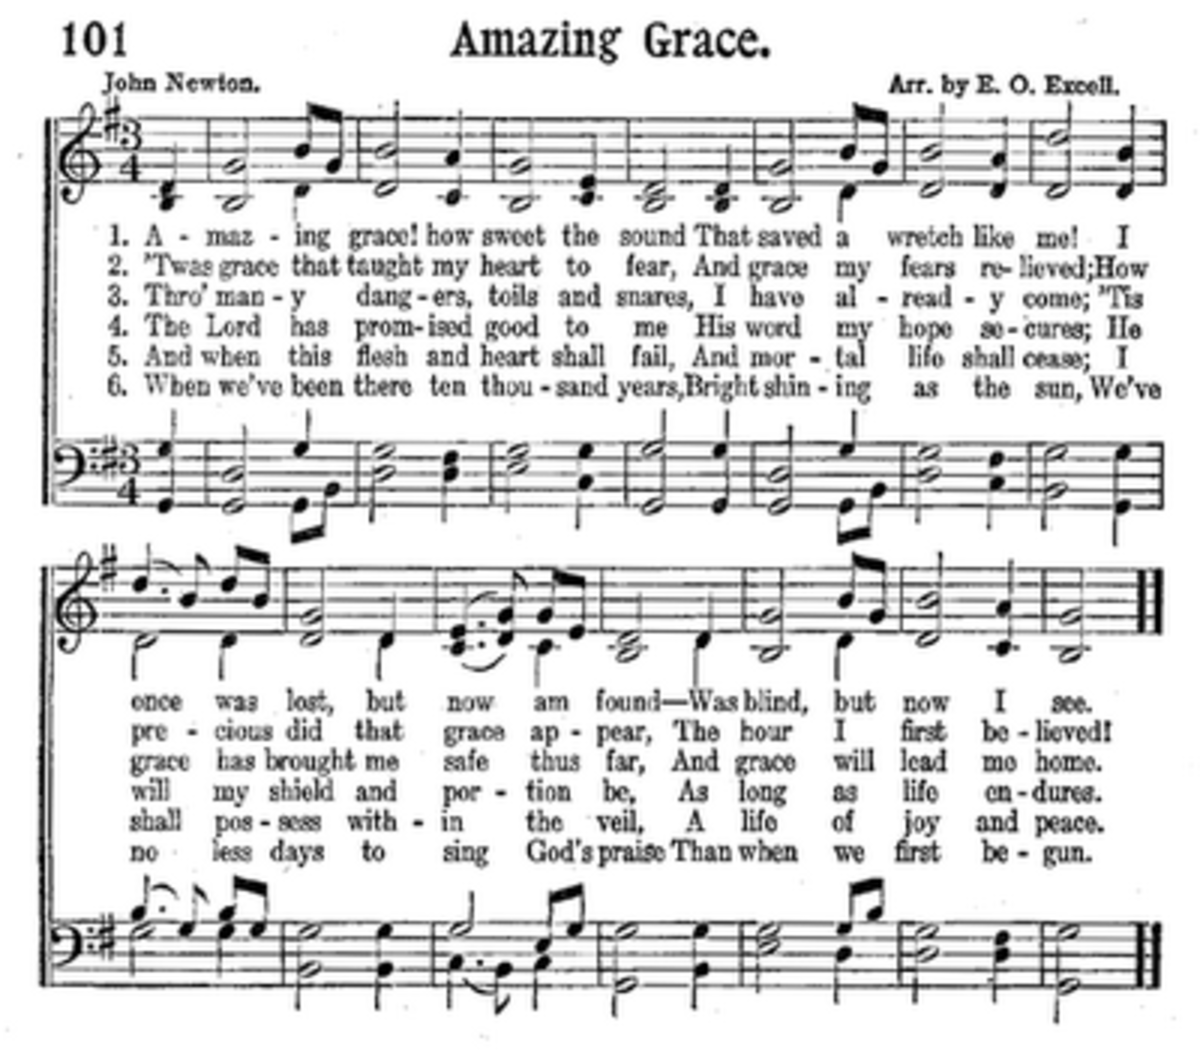 Amazing Grace: Amazing Grace In 50 Languages